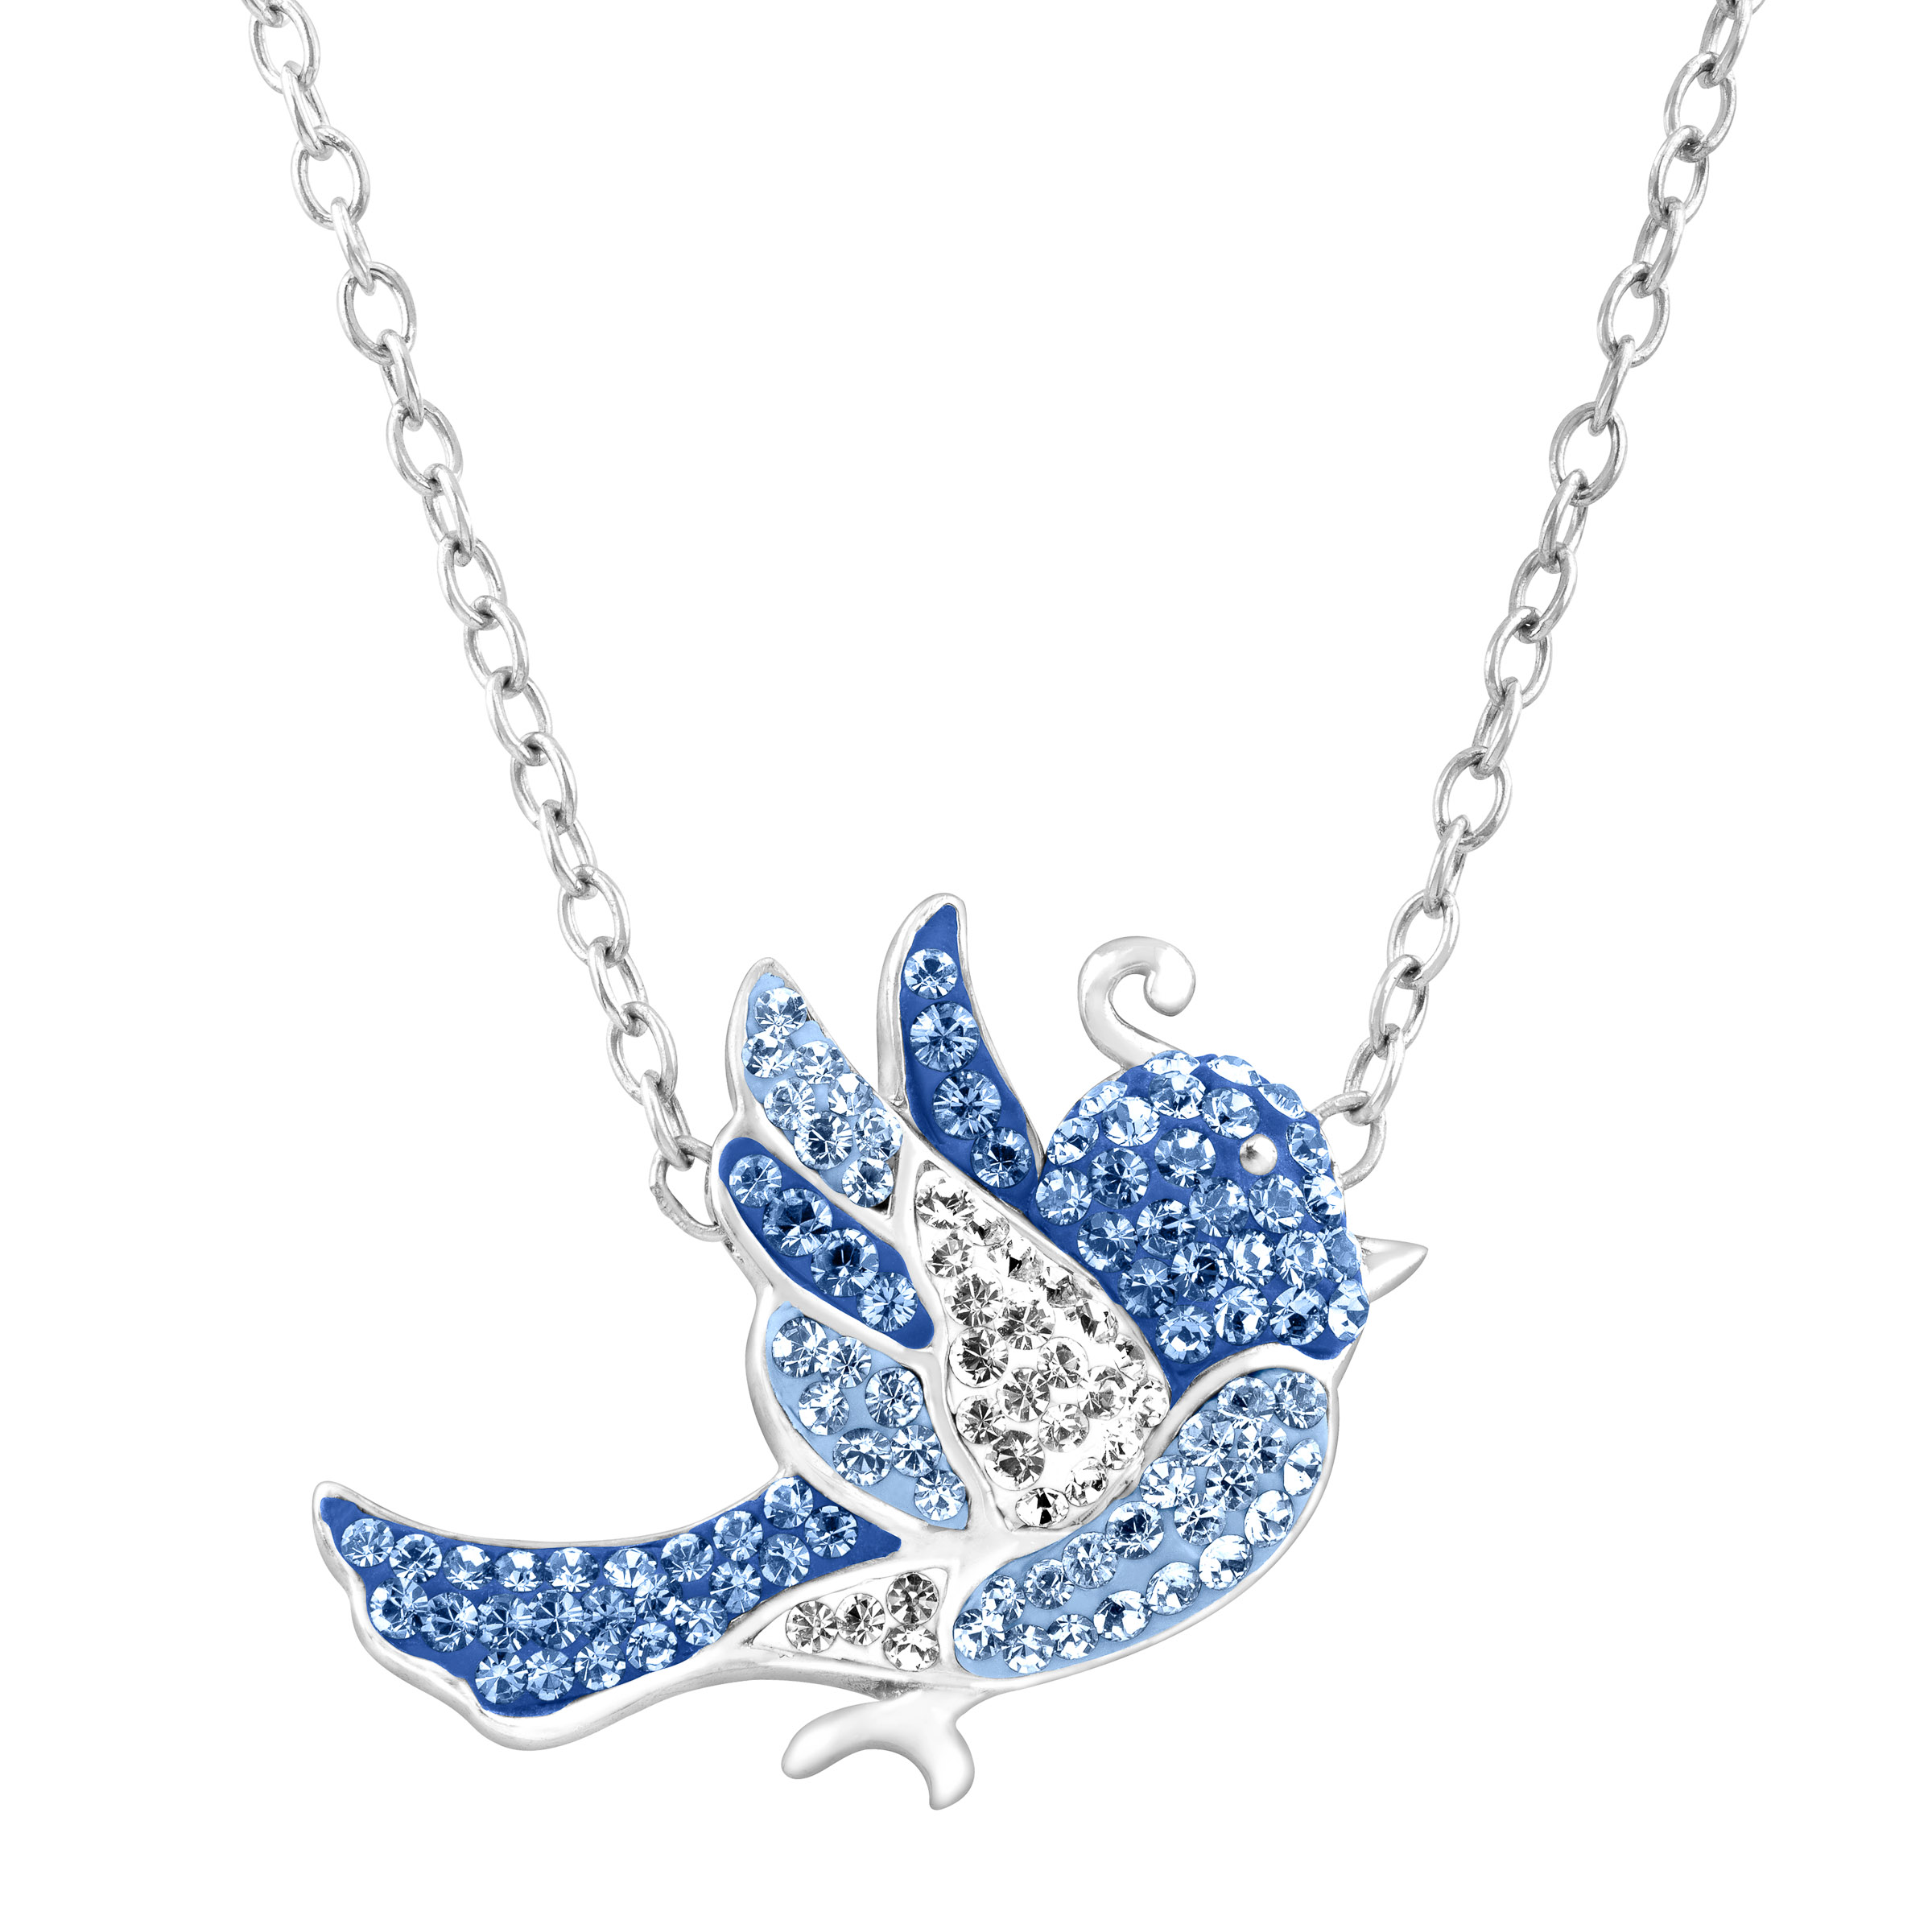 Crystaluxe Bluebird Necklace with Swarovski Crystals in Sterling Silver